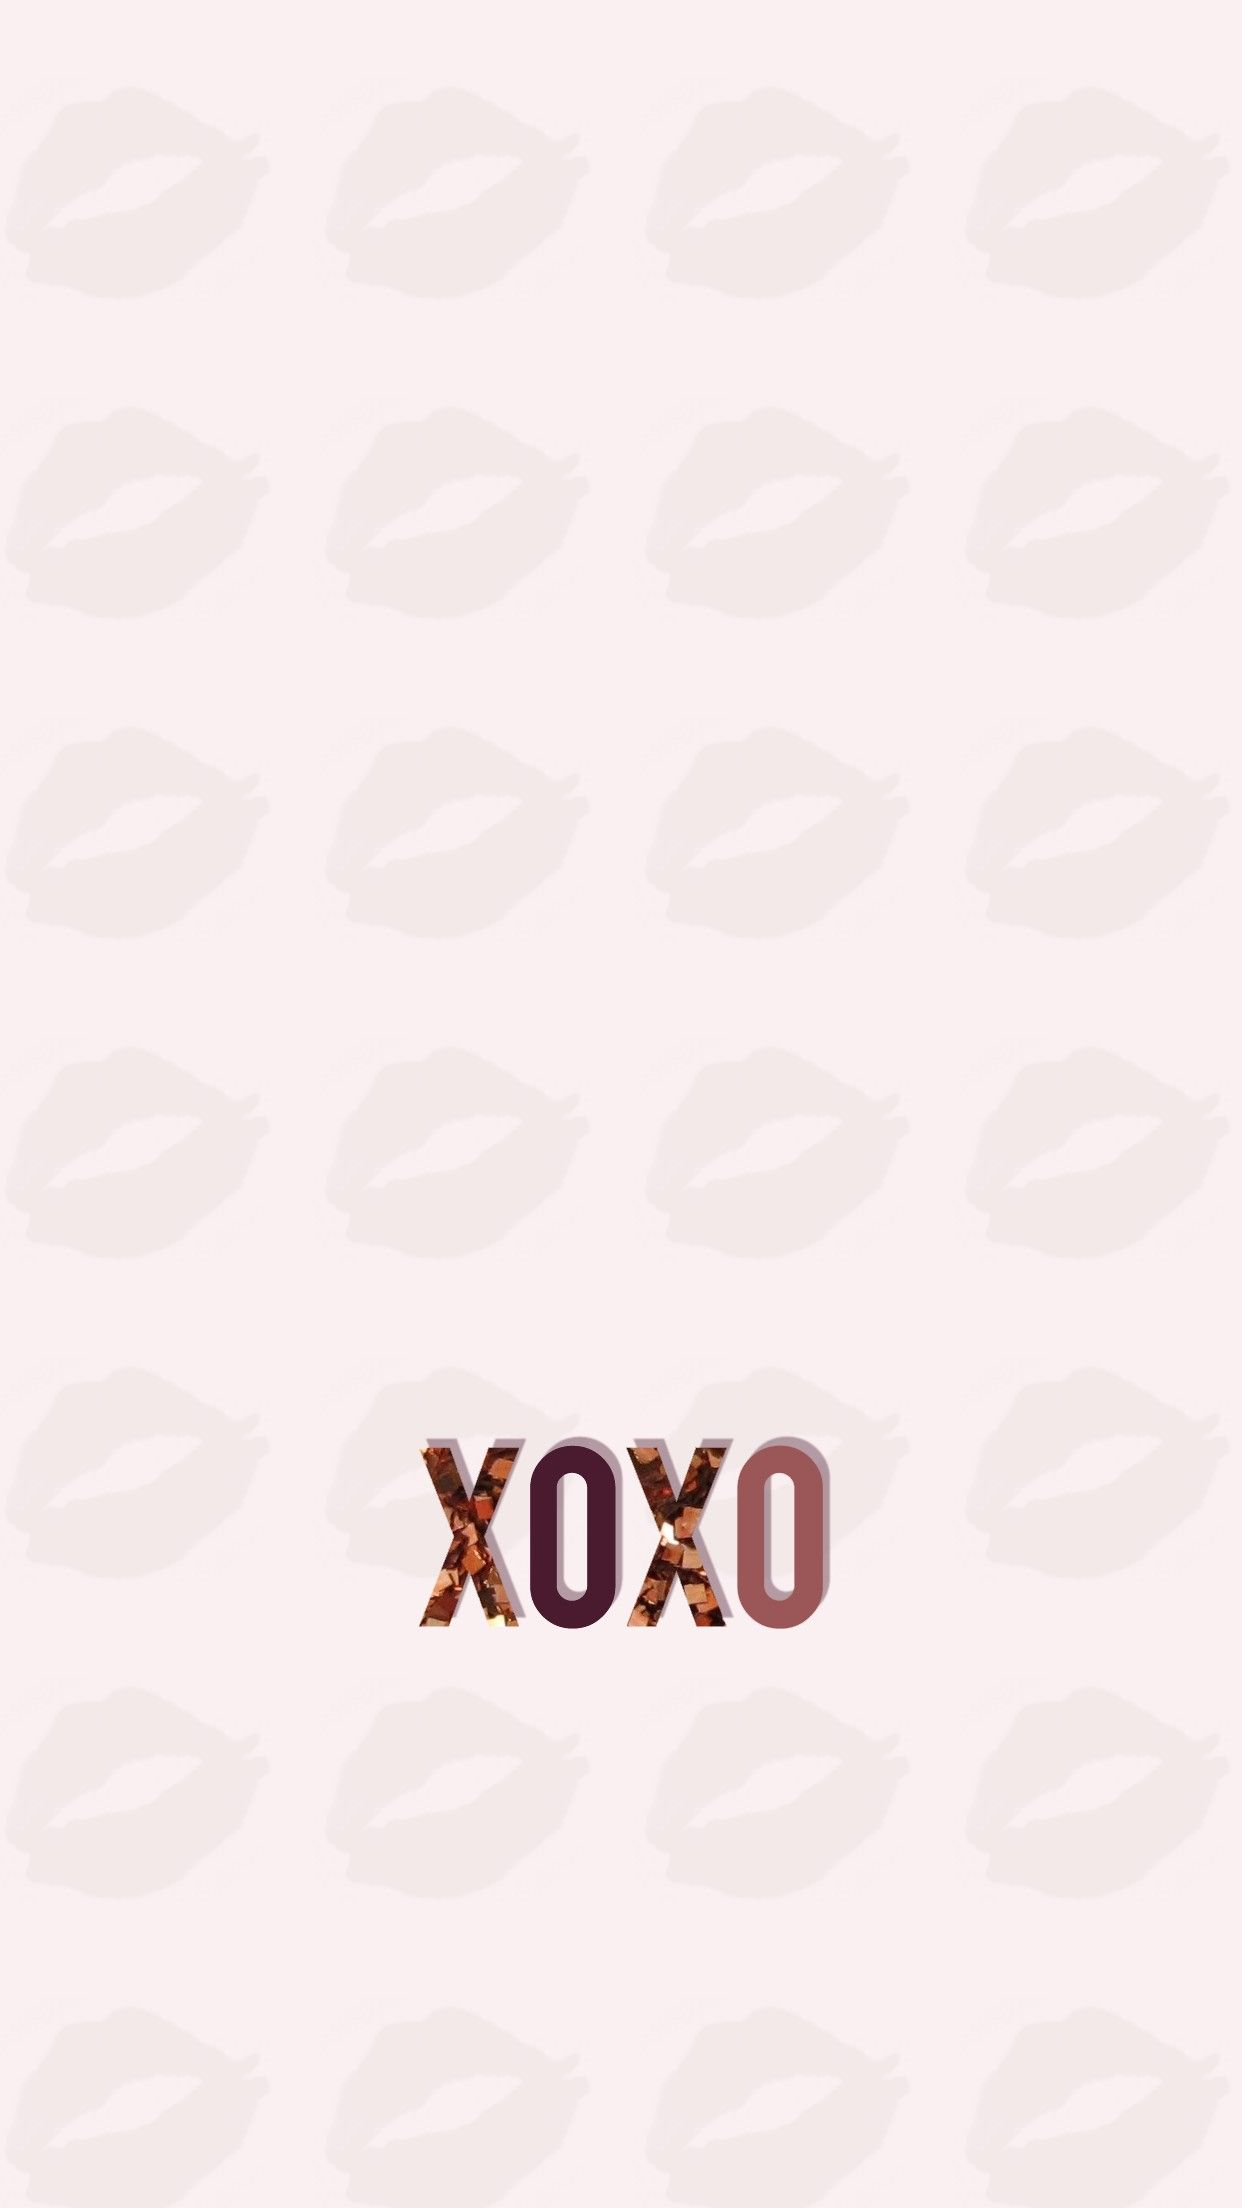 Wallpaper Background Iphone Android Hd Xoxo Lips Kiss Gold Rose Glitter Lip Wallpaper Iphone Background Rose Gold Wallpaper